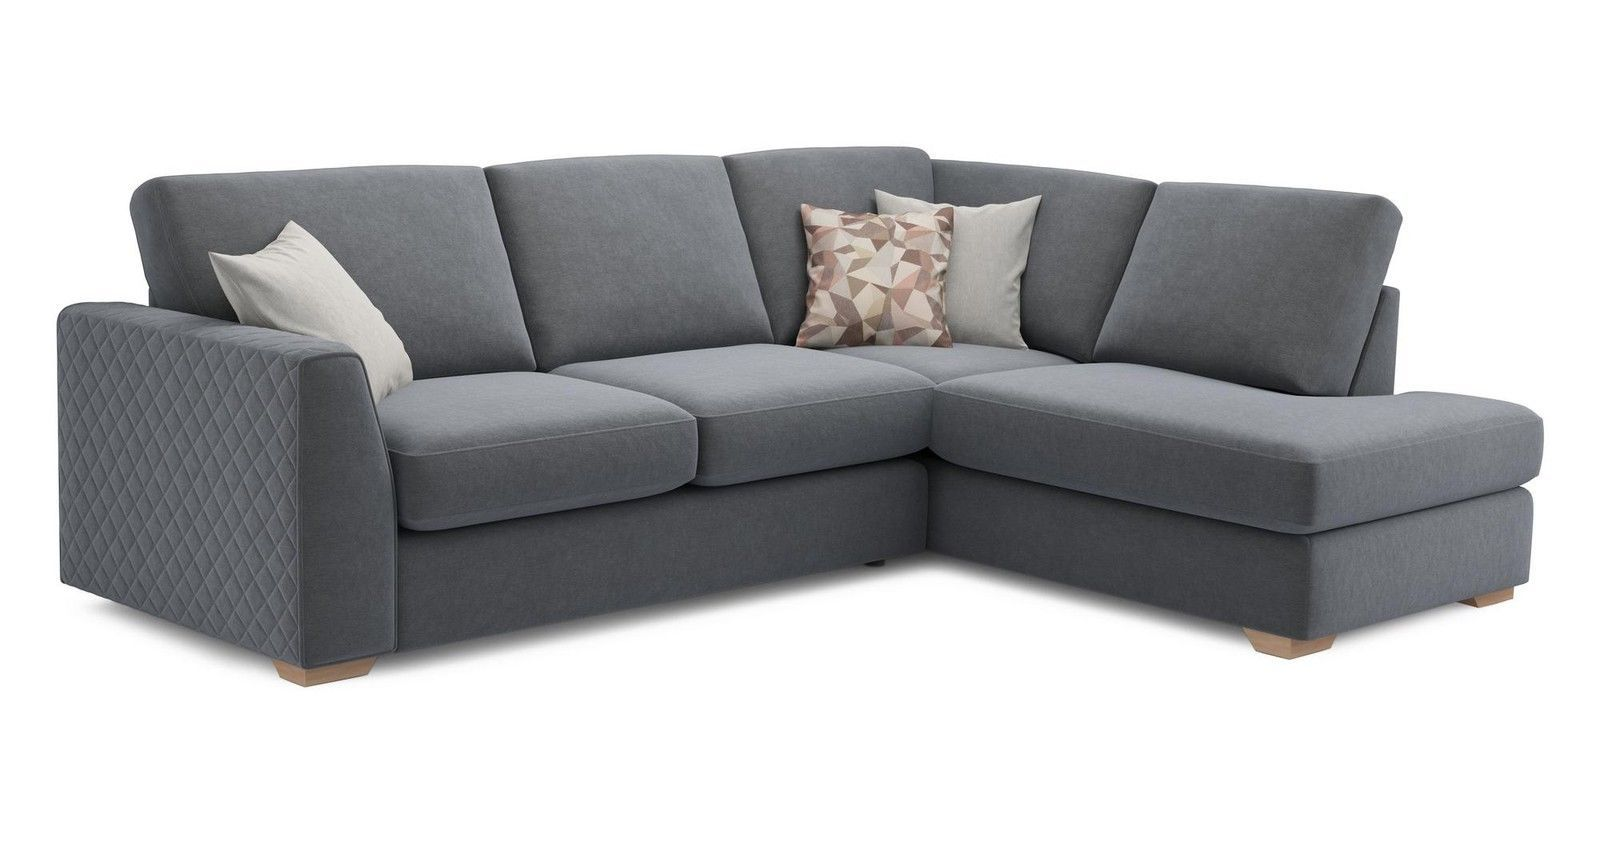 Foam Corner Sofa Bed Milner Right Hand Facing Corner Storage Sofa Bed With Foam Thesofa